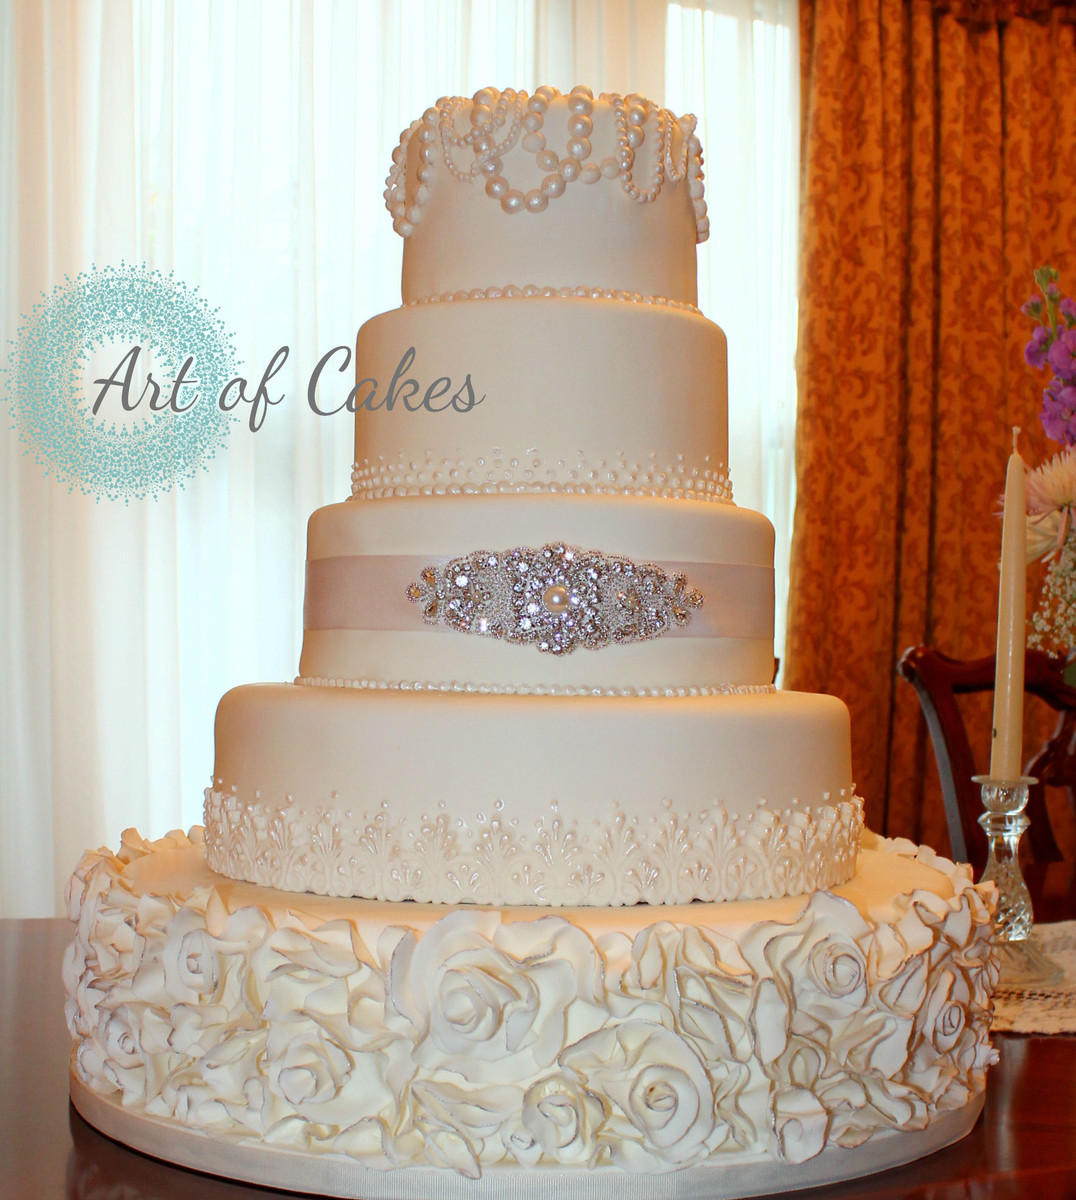 Wedding Cakes Chattanooga Tn  Art of Cakes s Wedding Cake Tennessee